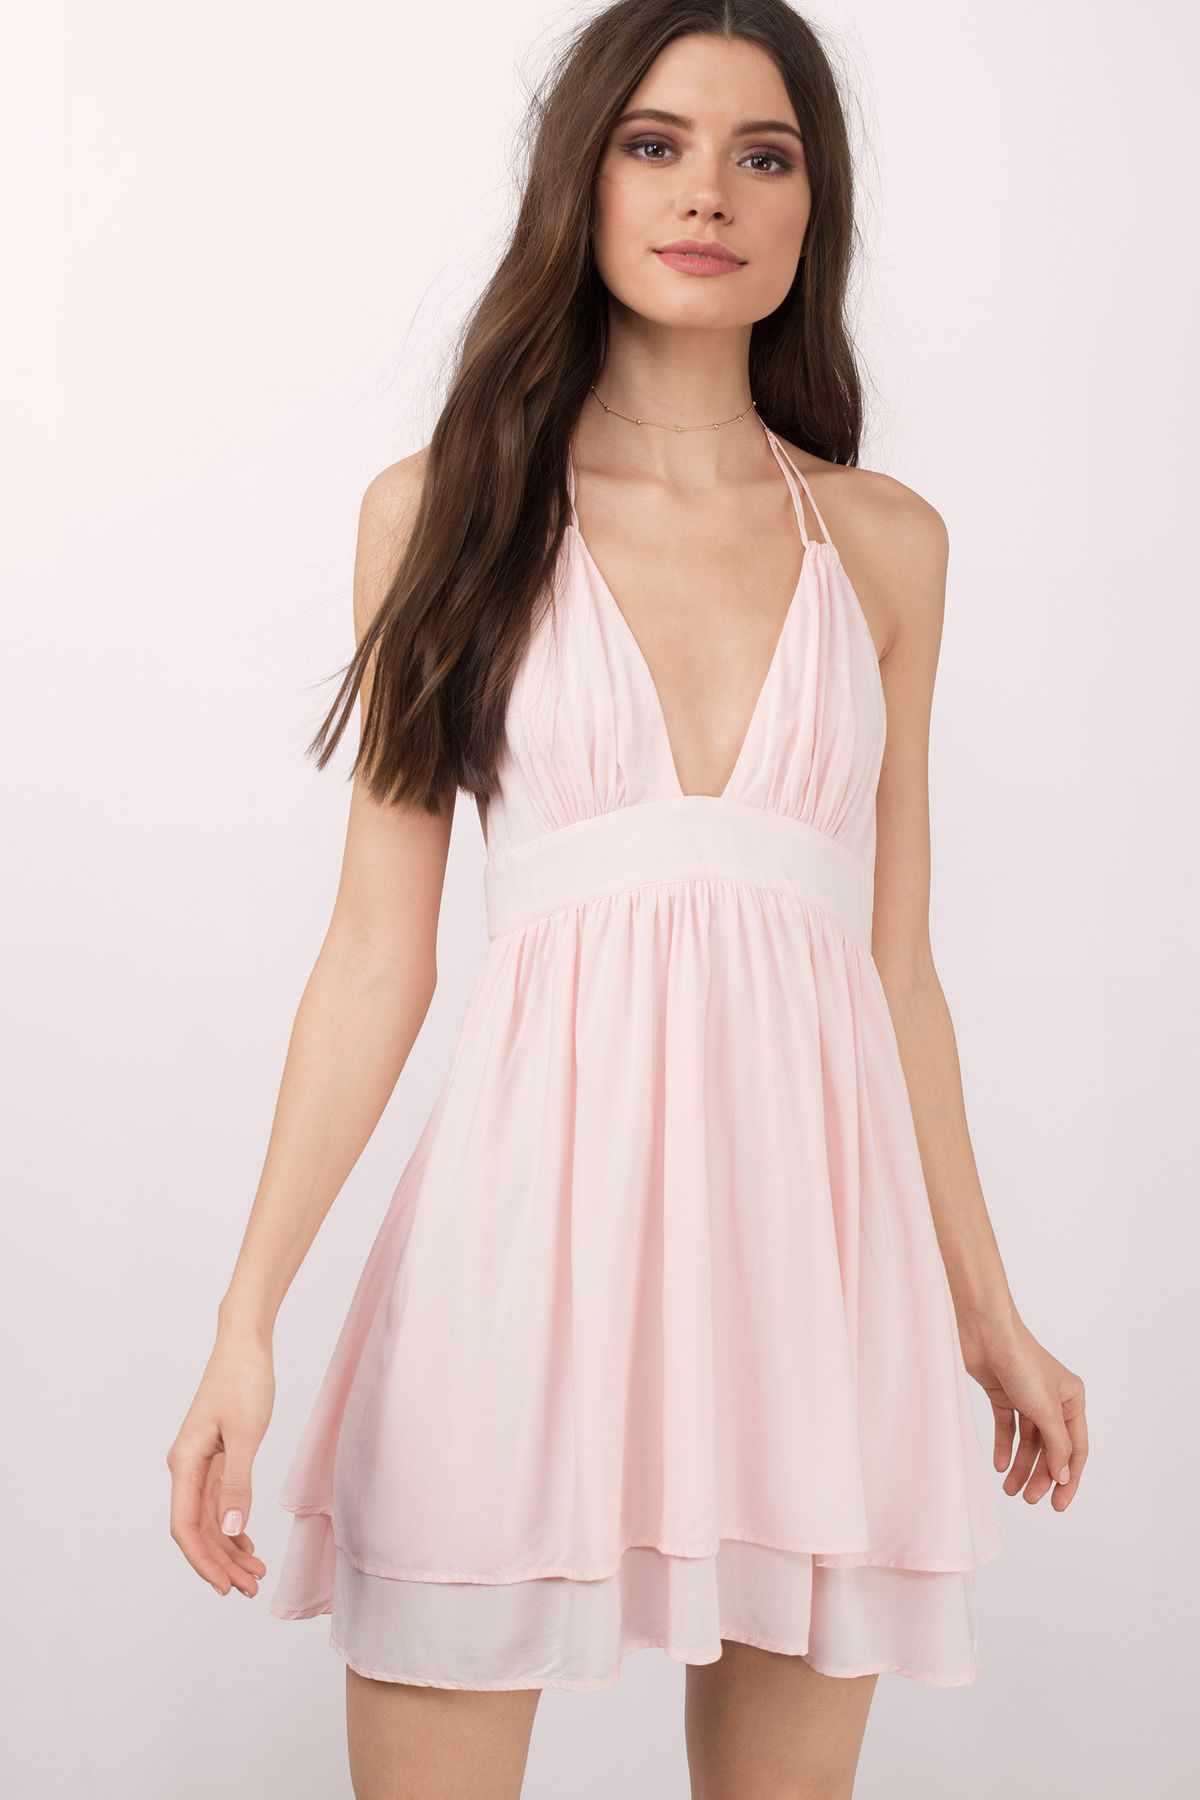 Sure thing babydoll dress at tobi shoptobi sexy short dress